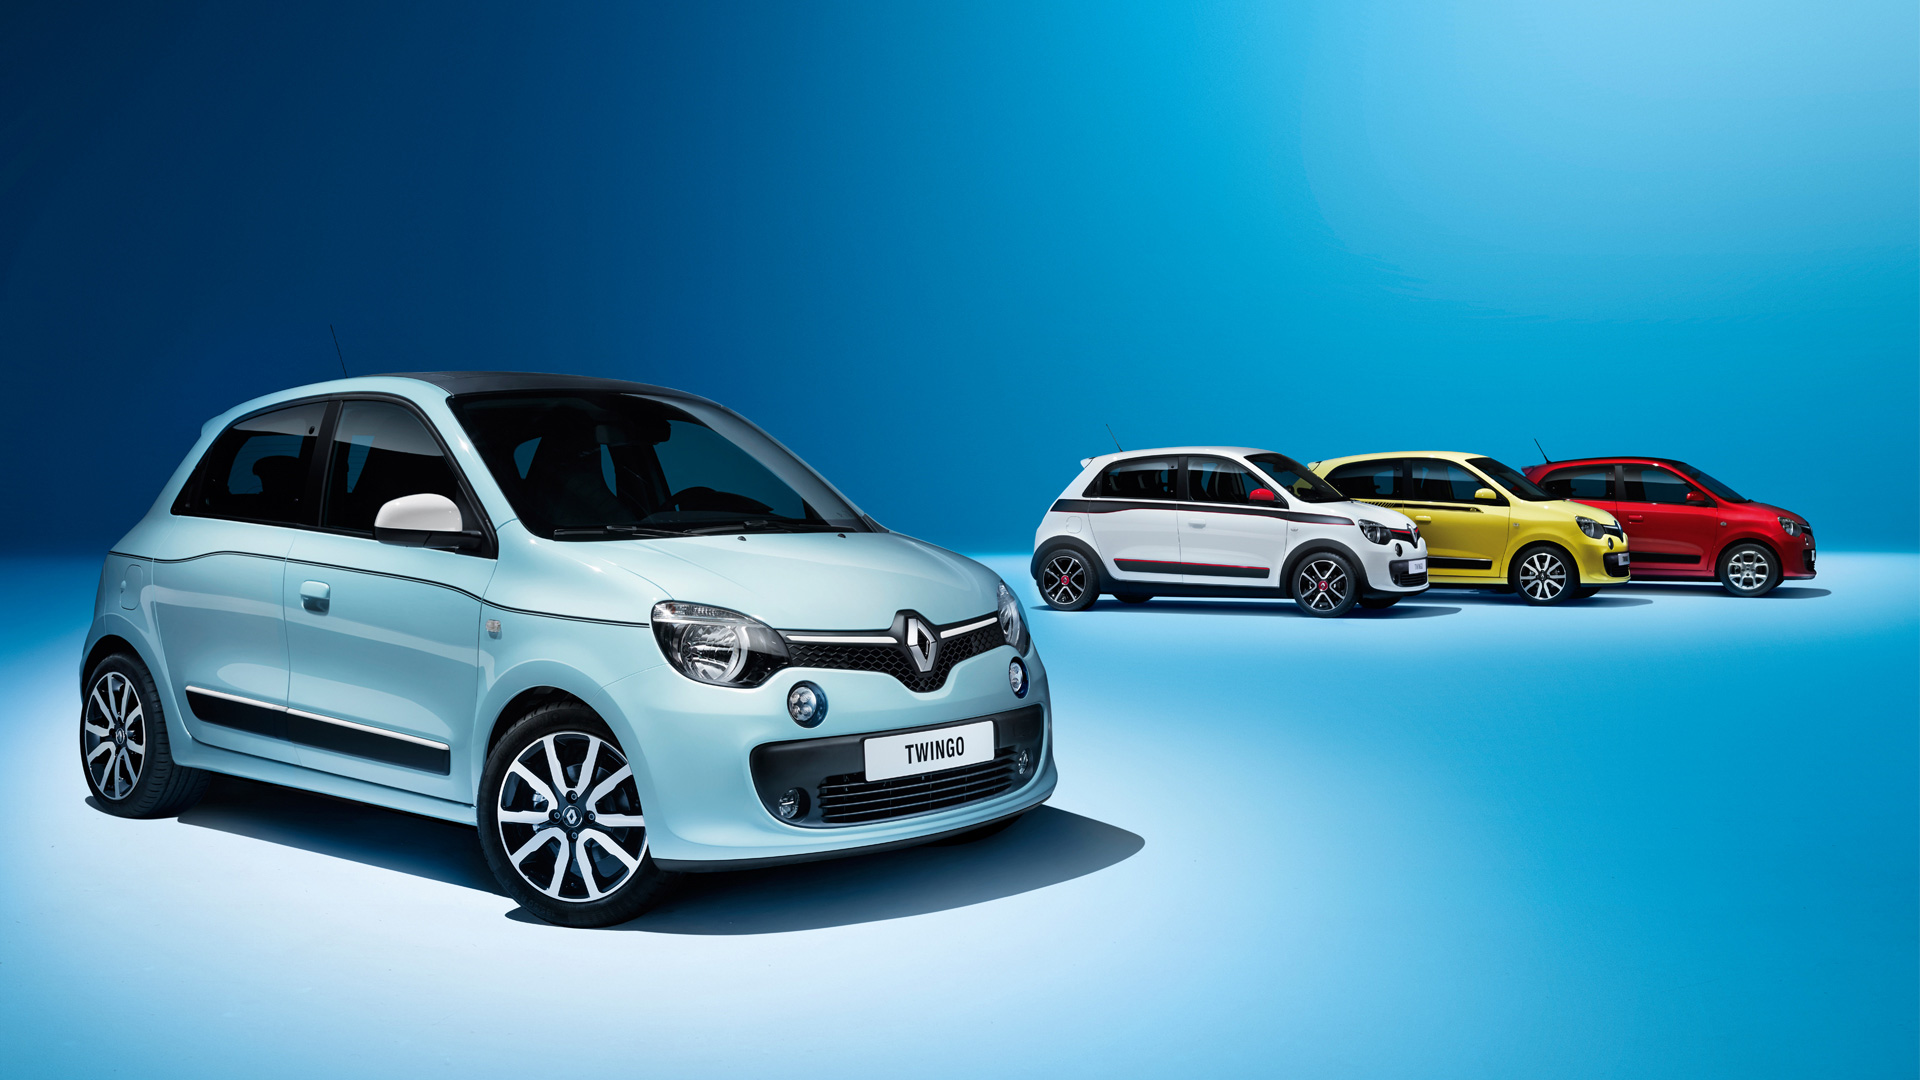 Modèle illustré : Twingo Intens avec options